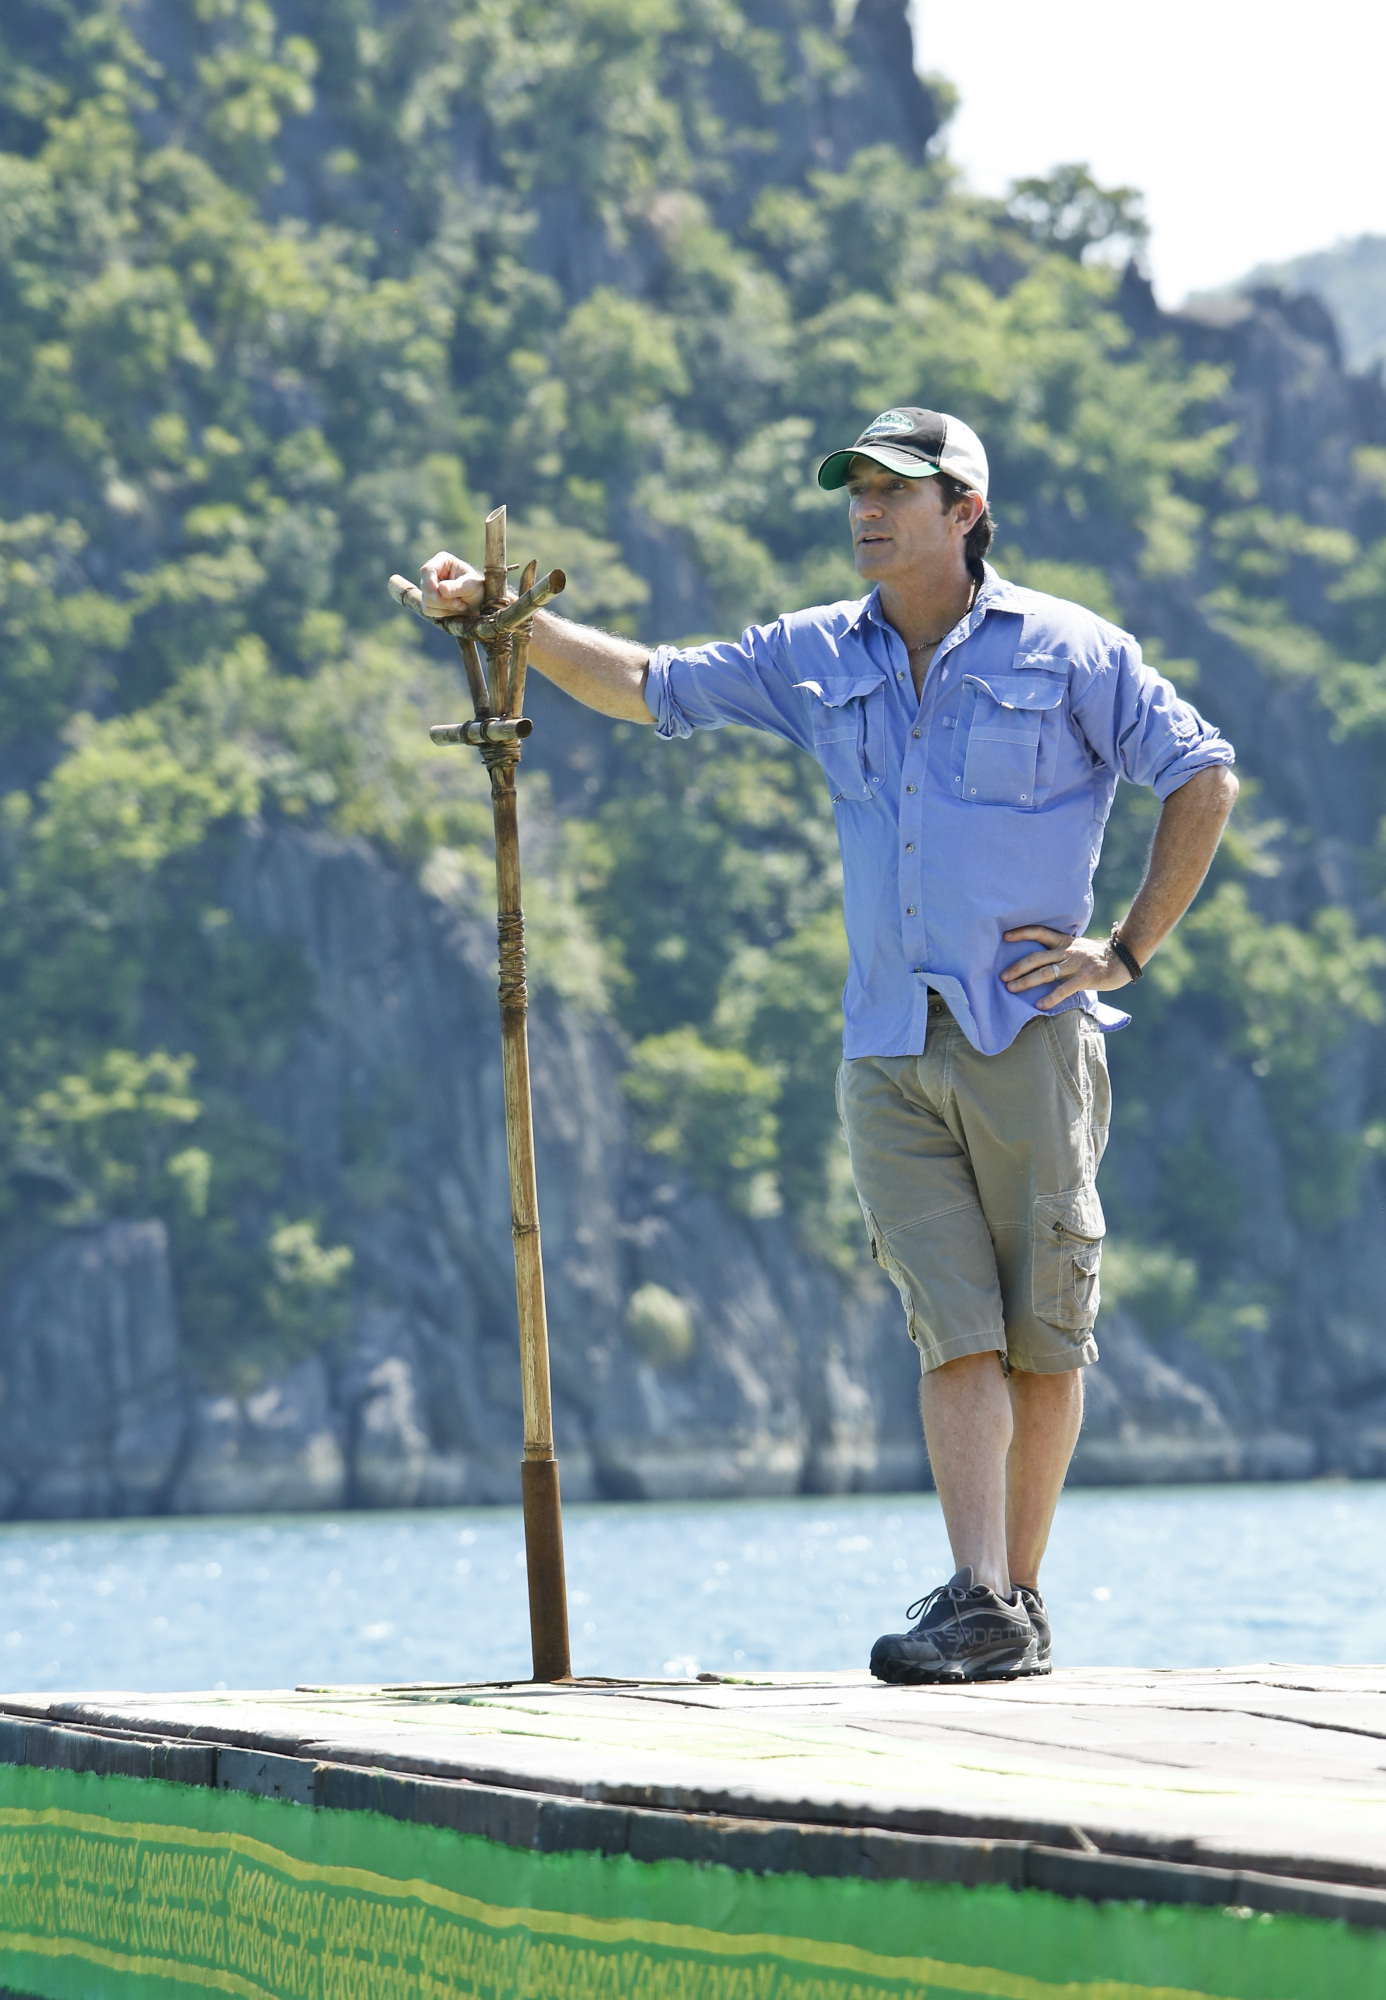 Jeff Probst in